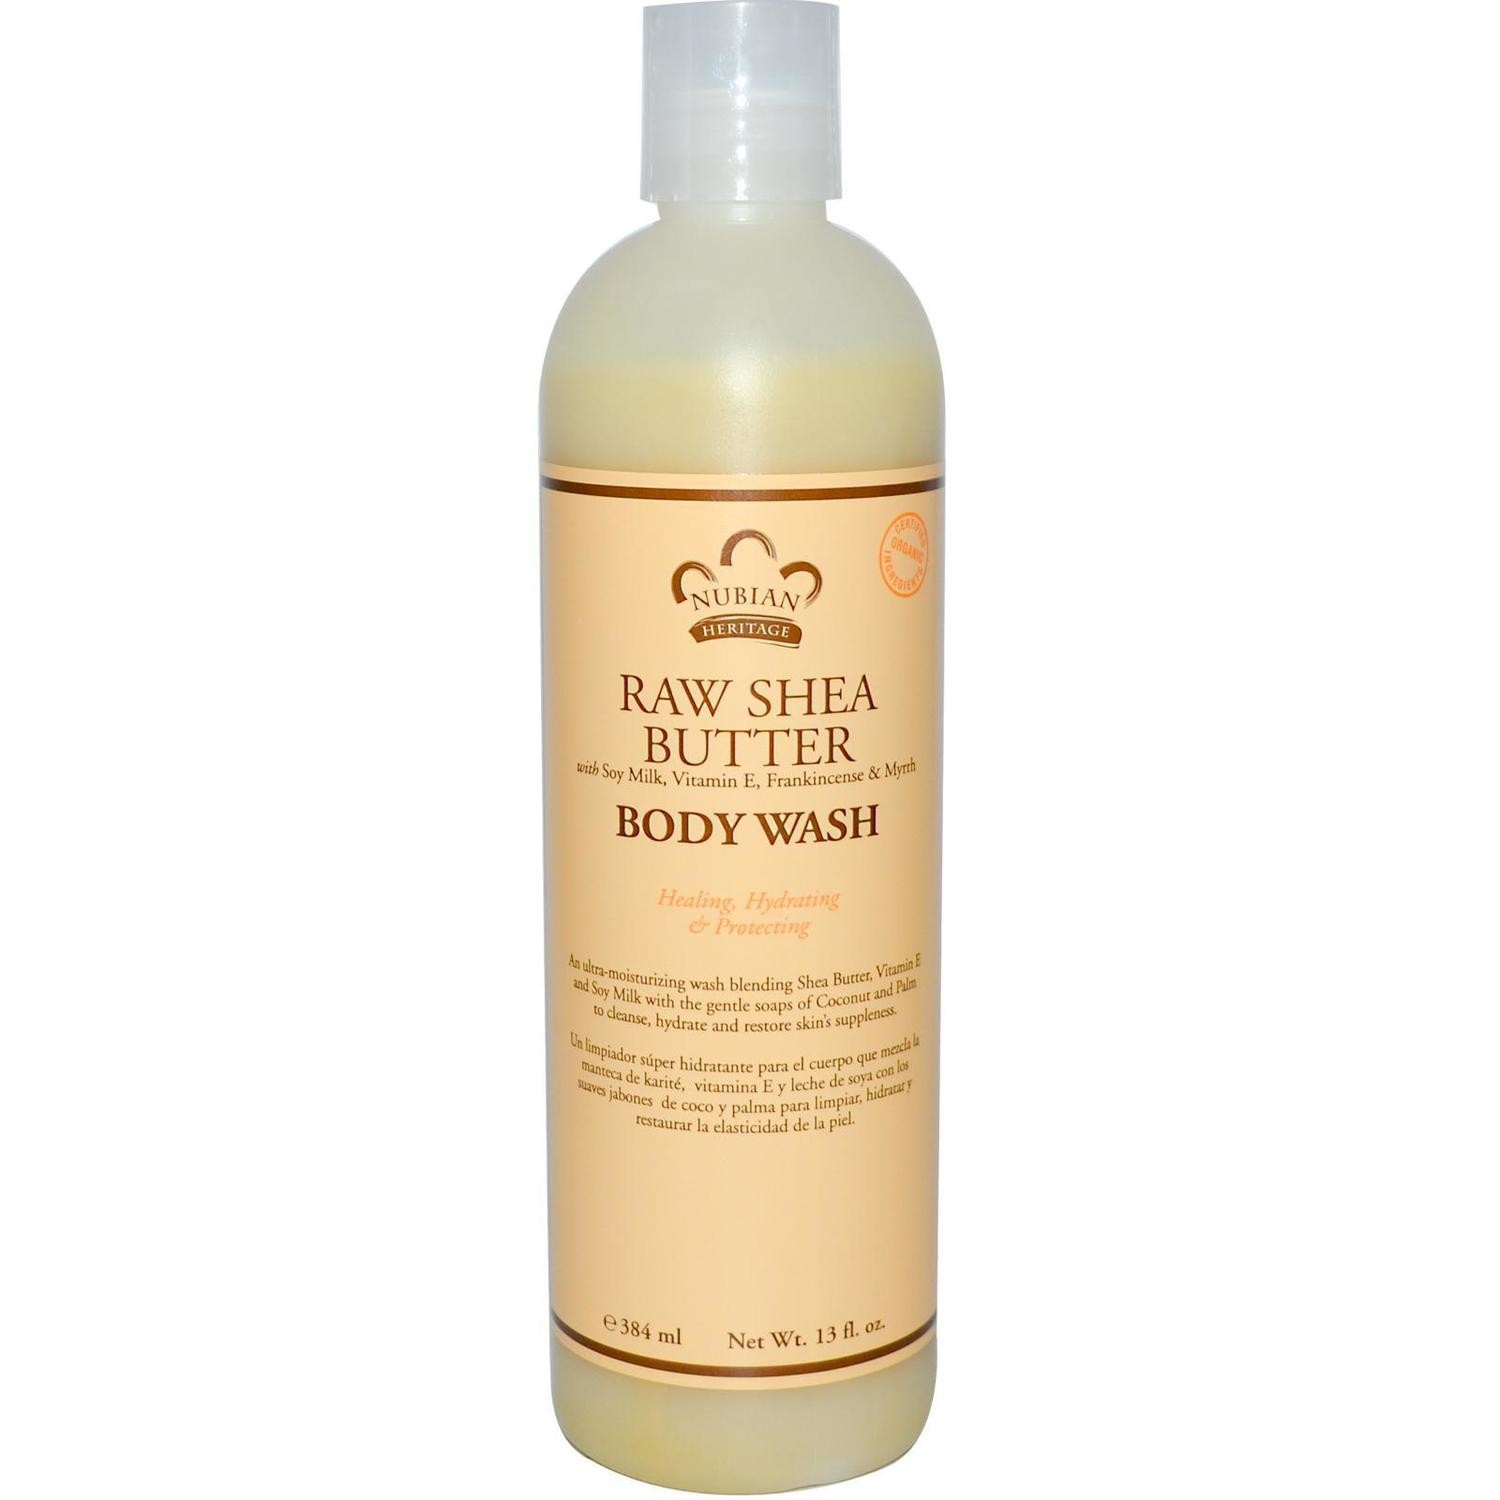 Nubian Heritage Raw Shea Butter Body Wash 13oz